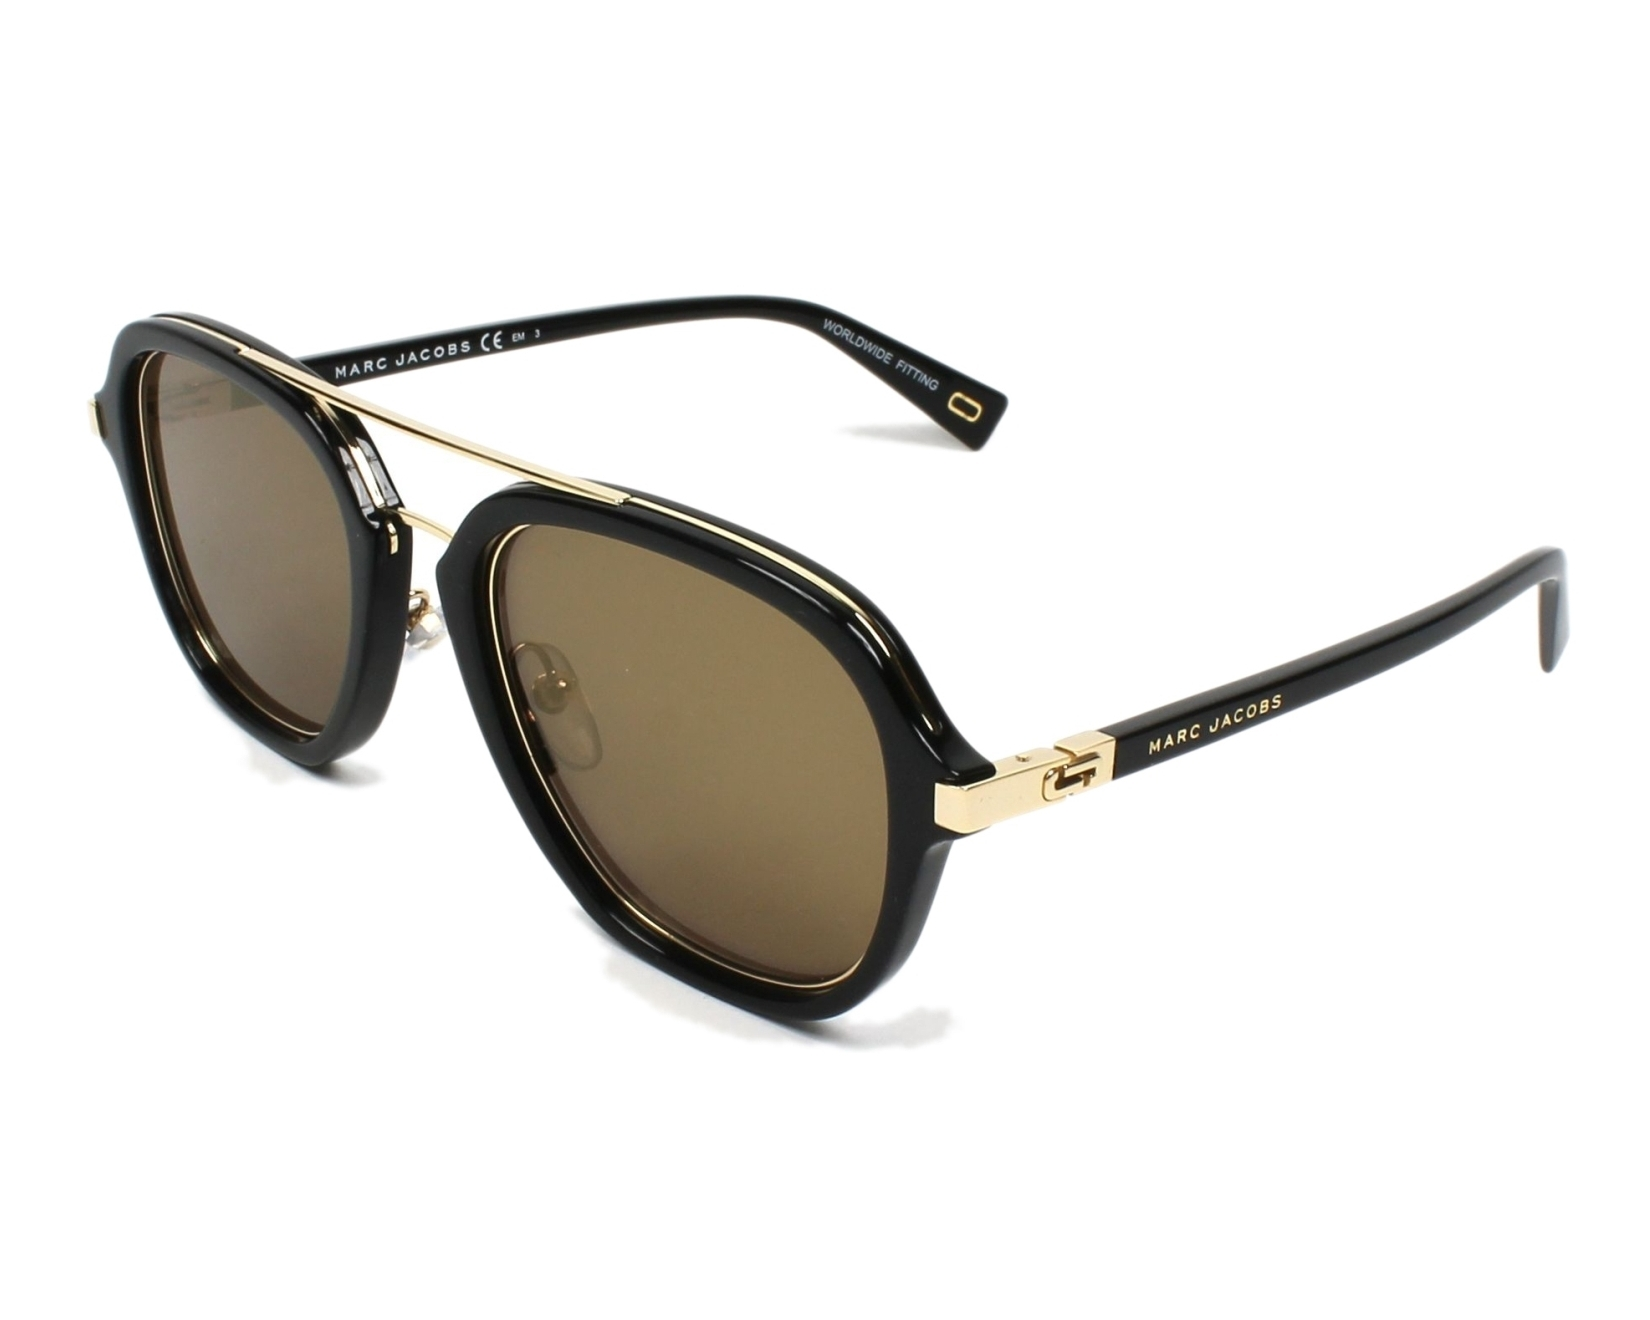 Sunglasses Marc Jacobs MARC-172-S 2M2 K1 54-22 Black Gold d070468ae80d